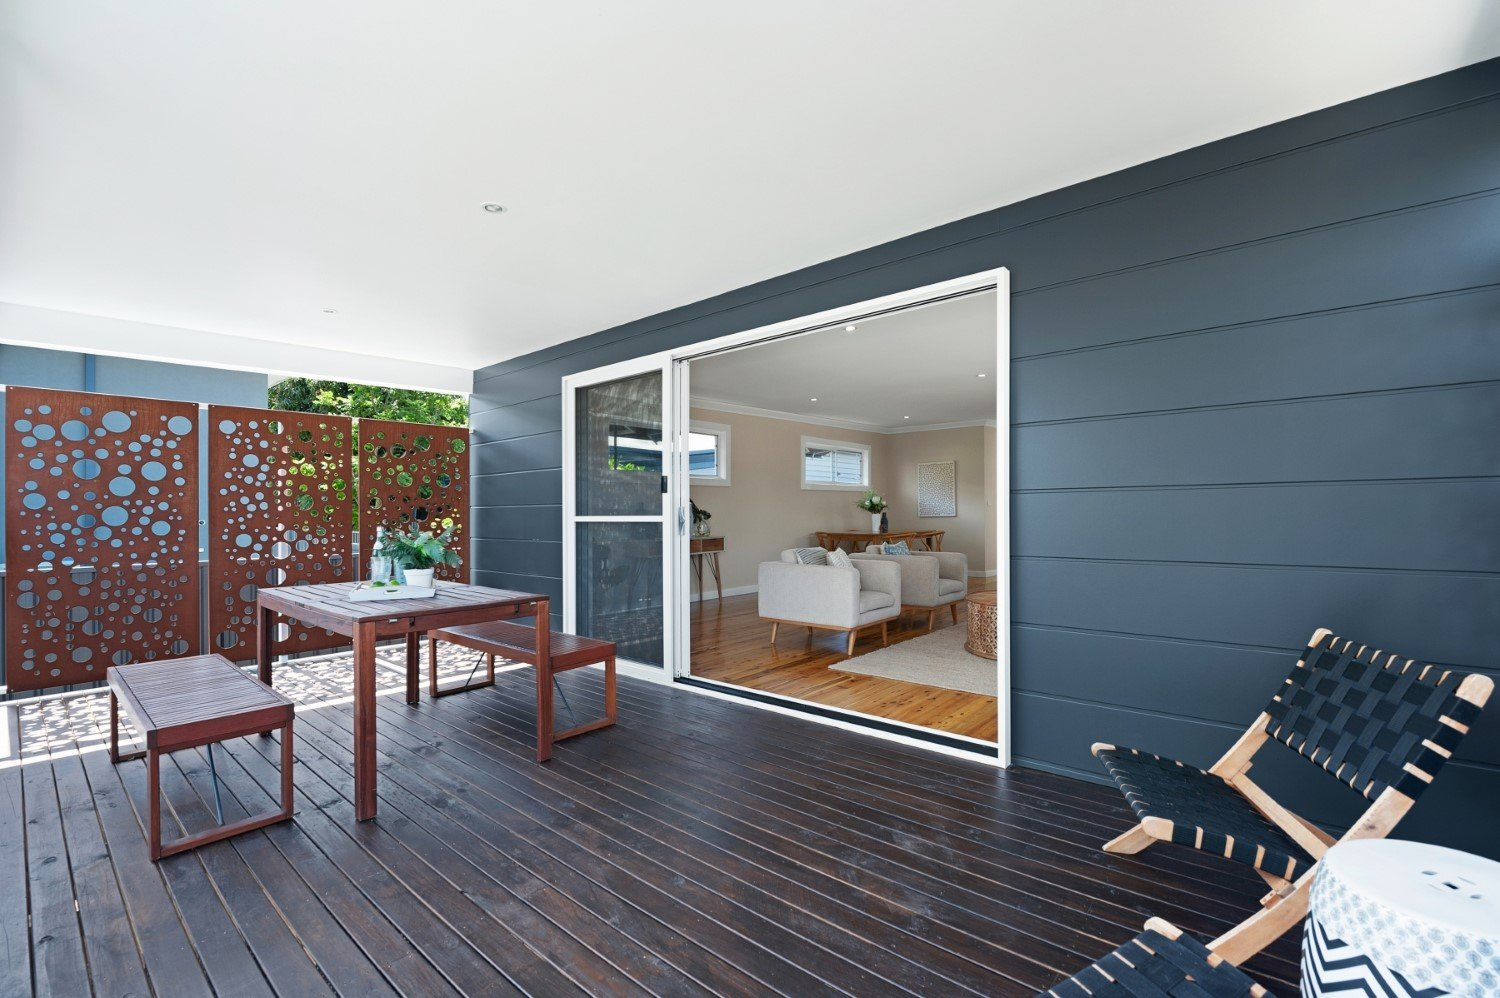 Charming weatherboard home   Belmont - https://www.peonyandsilk.com.au/wp-content/uploads/2019/02/Peony-and-Silk-Charming-weatherboard-home-Belmont-7.jpg